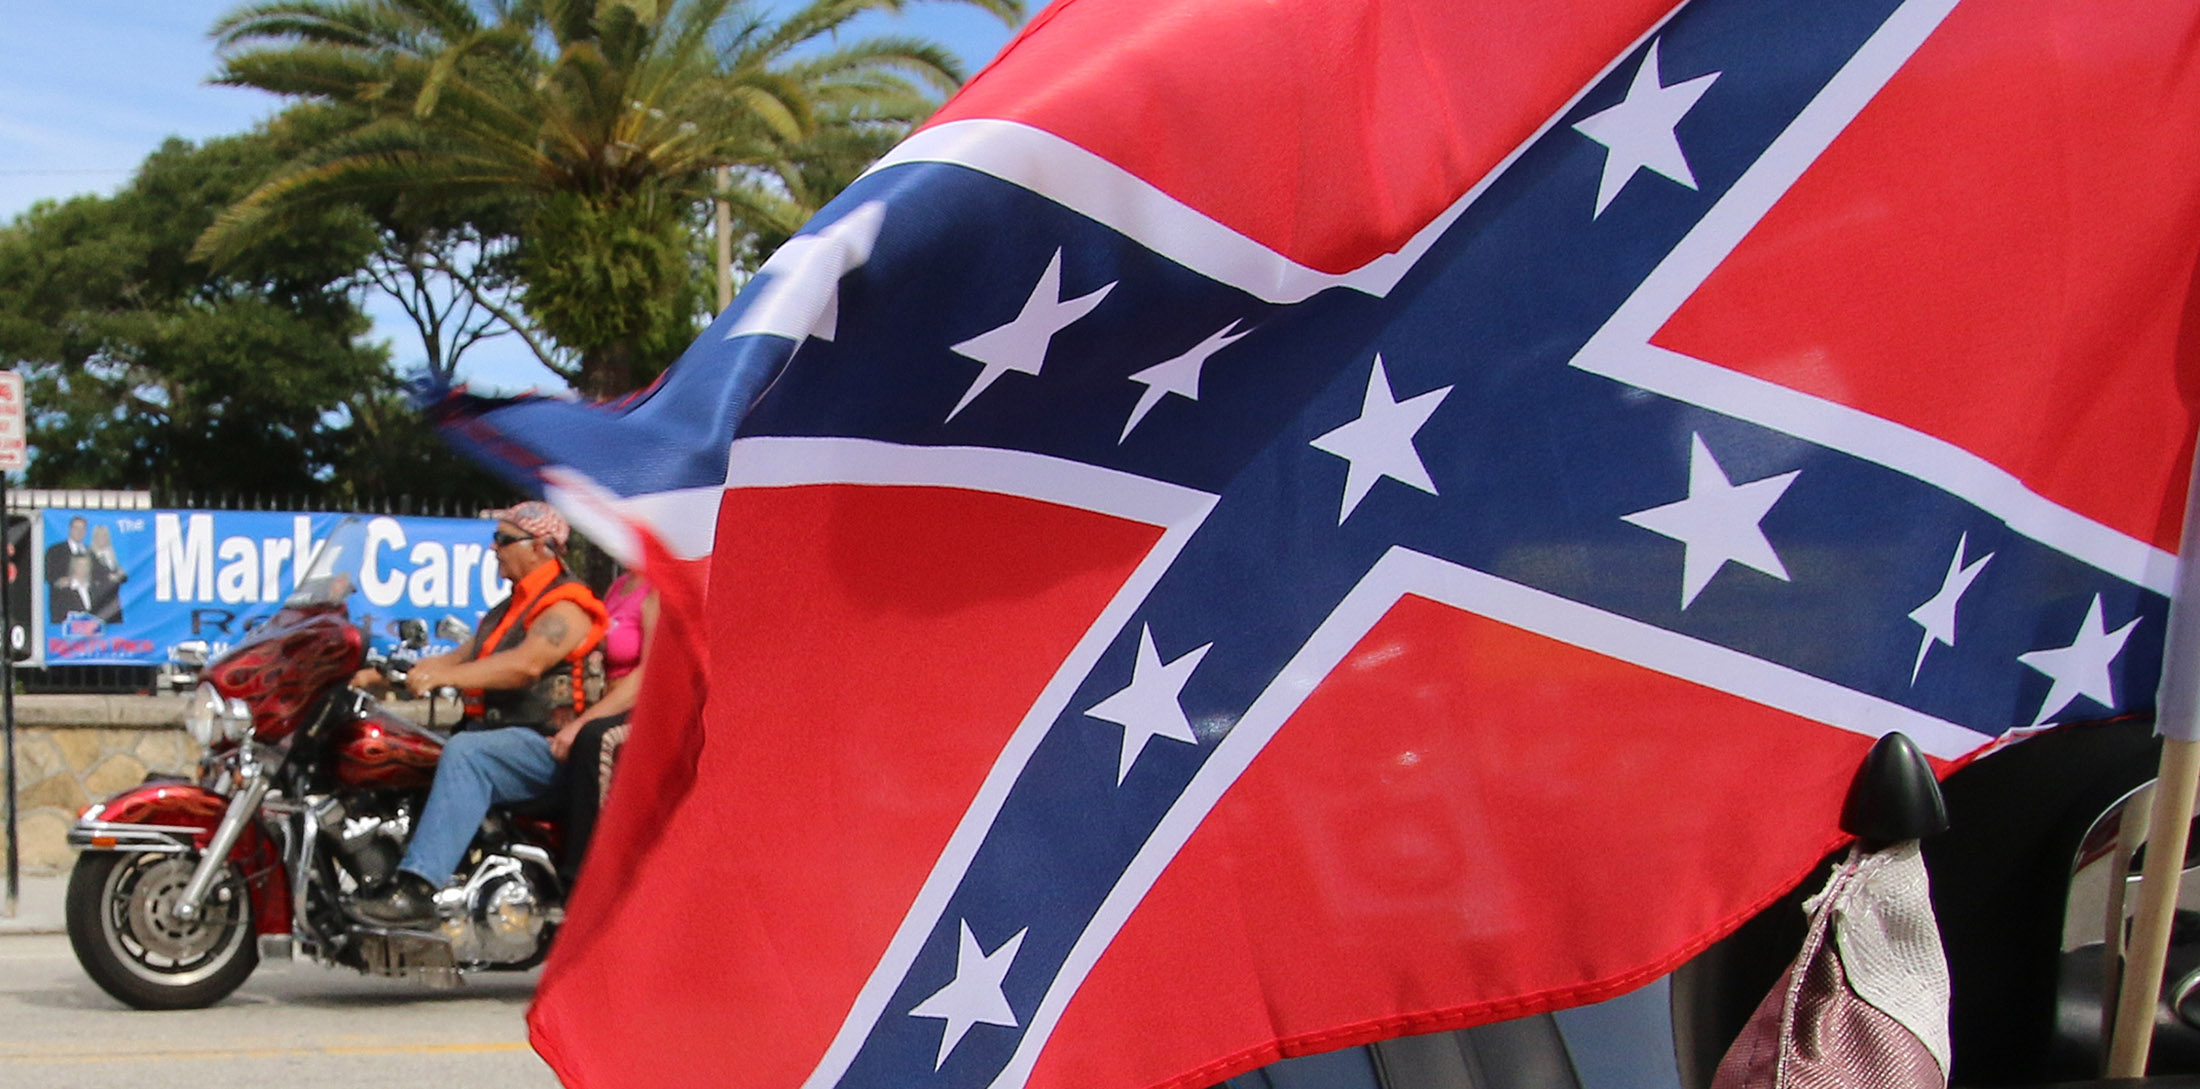 The stars & bars are a familiar sight during Biketoberfest as it rolls into day 2 in Daytona Beach Friday  October 16, 2015. News-Journal/JIM TILLER